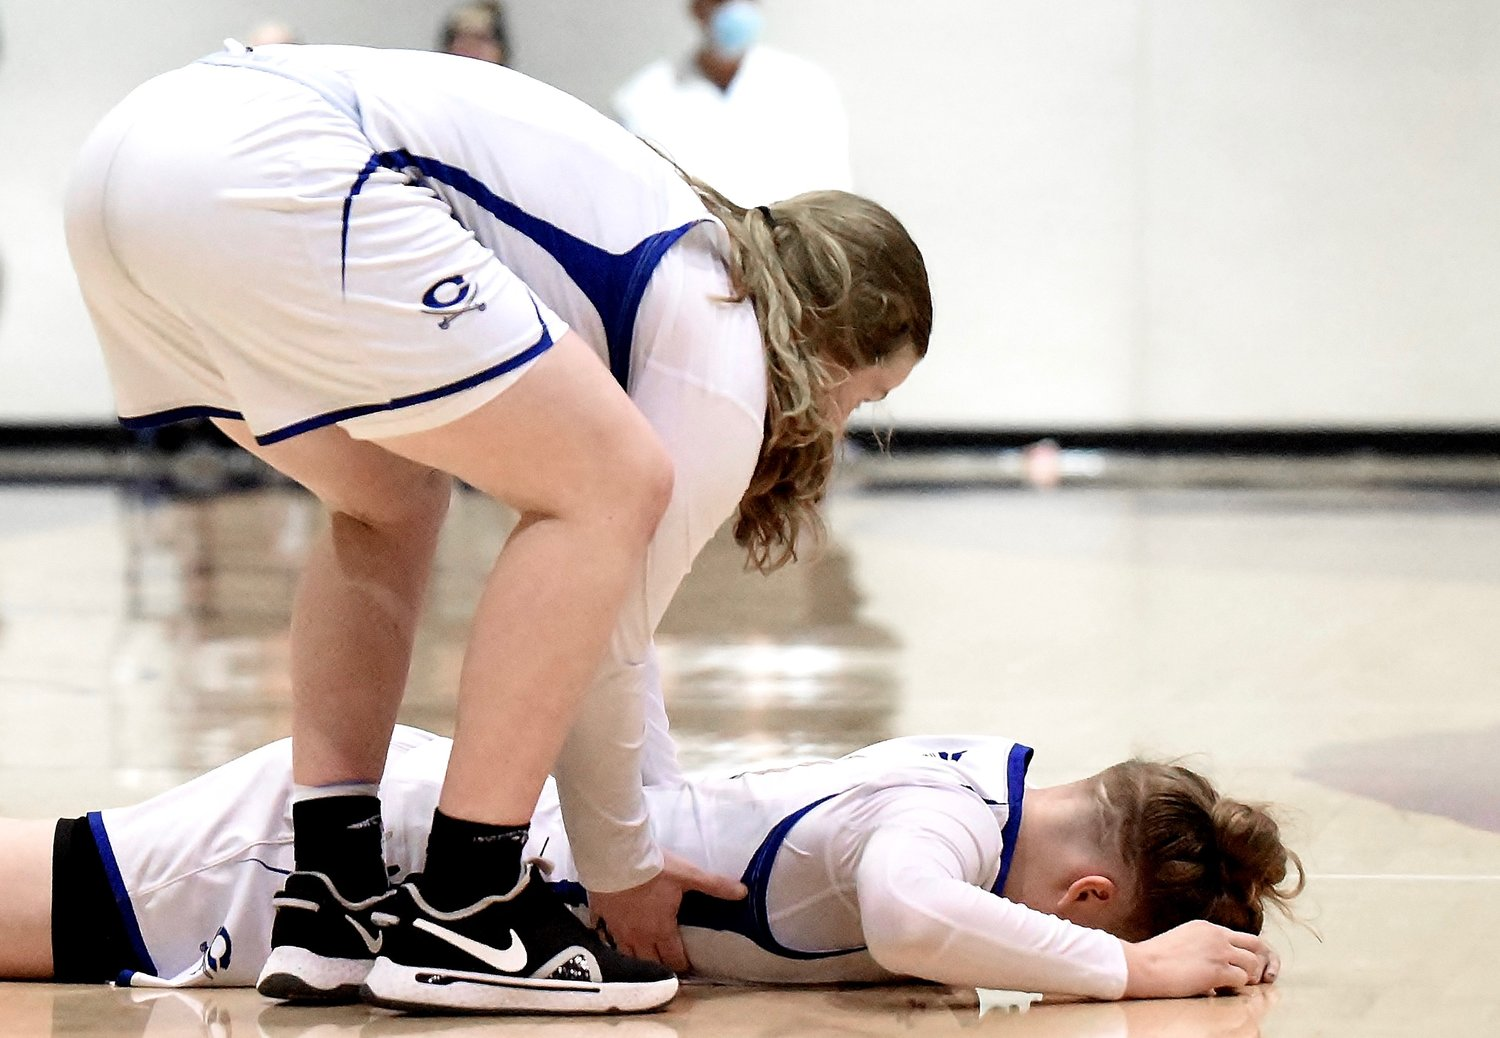 Cass junior Haley Johnson, standing, helps teammate Claire Davis off the floor after the Colonels fell to Hiram in the Region 7-AAAAA championship game Friday at The Storm Center. Davis scored a game-high 19 points in a 55-50 loss, which marked the first defeat of the season for previously unbeaten Cass.